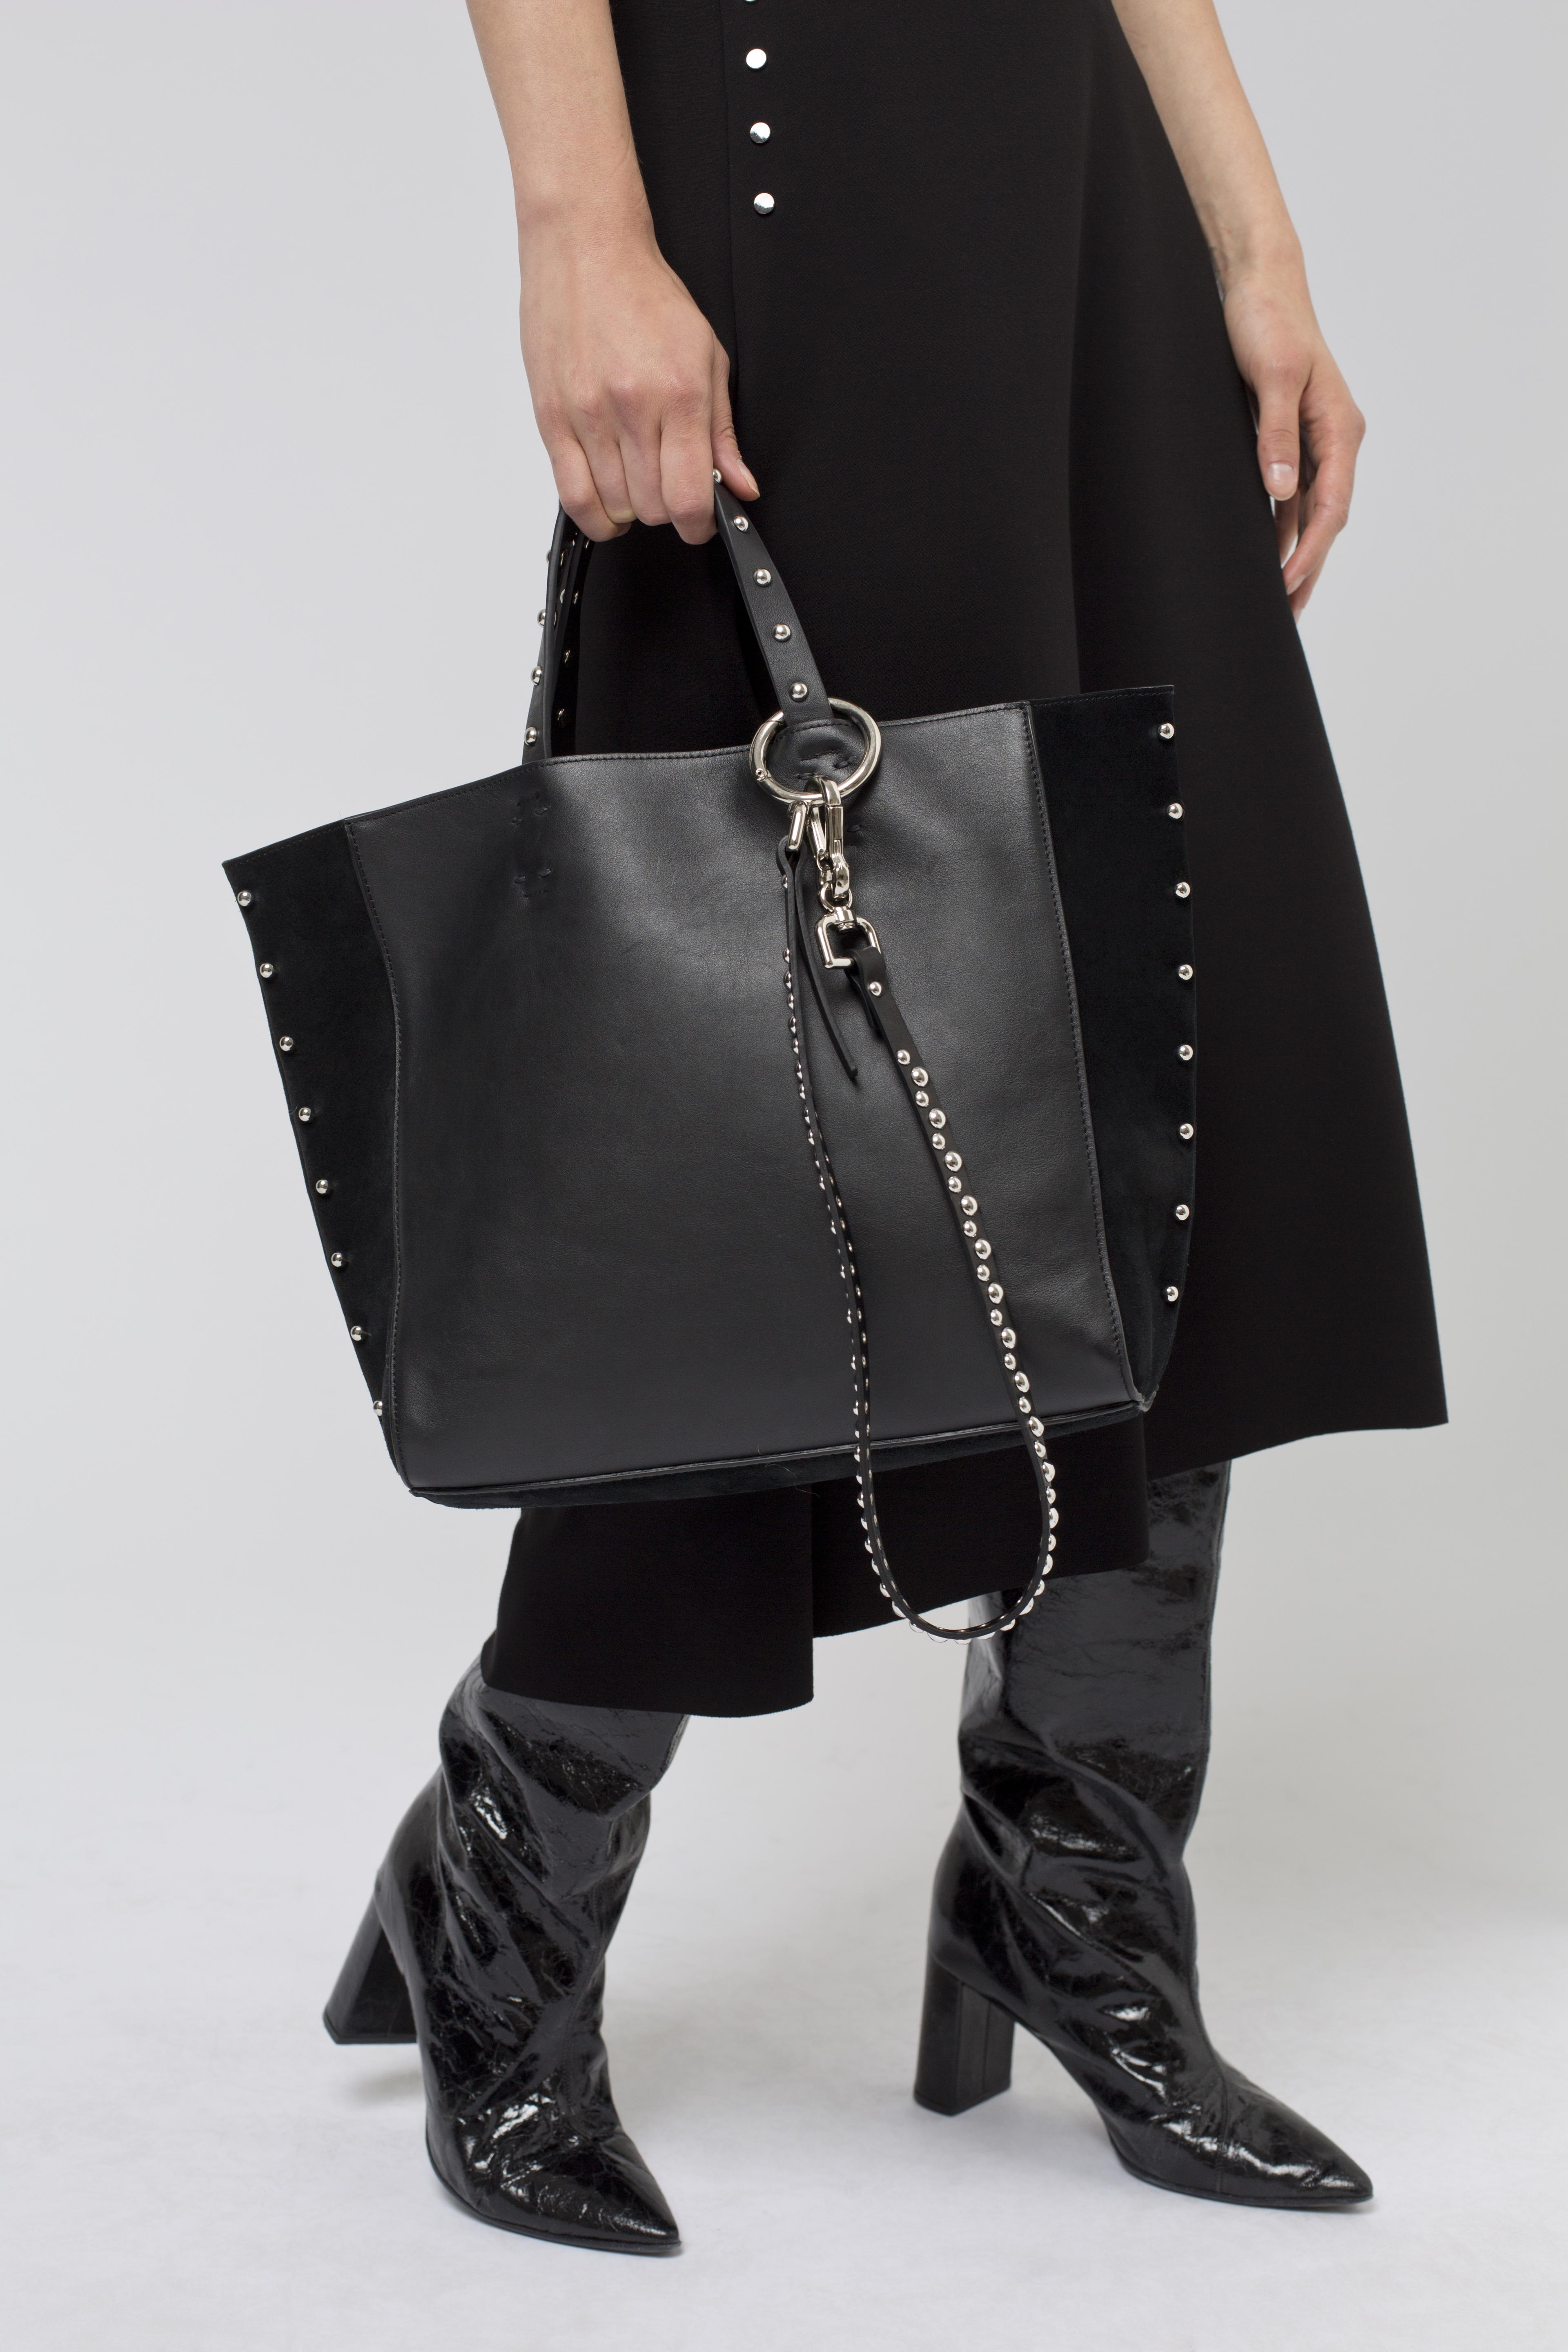 96bfbda104a3 dorothee-schumacher--Studded-Attitude-Piercing-Detail-Neoprene-Bag -With-Key-Chain-Decoration.jpeg